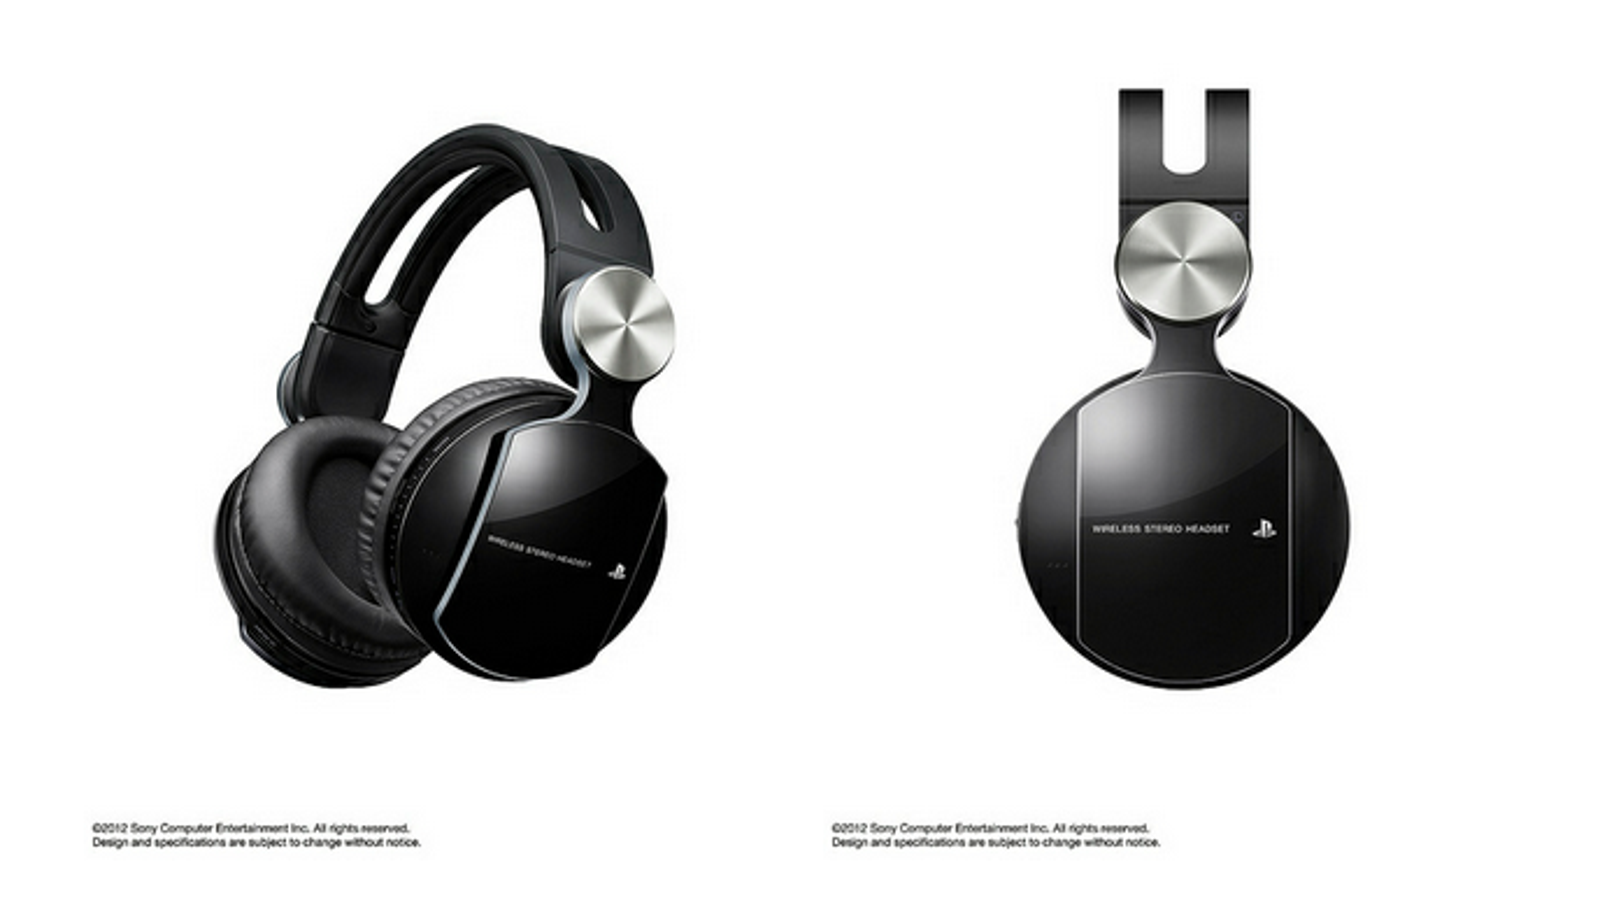 panasonic earbuds ergofit blue - Sony PS3's New Gaming Headset Brings Extra Bass